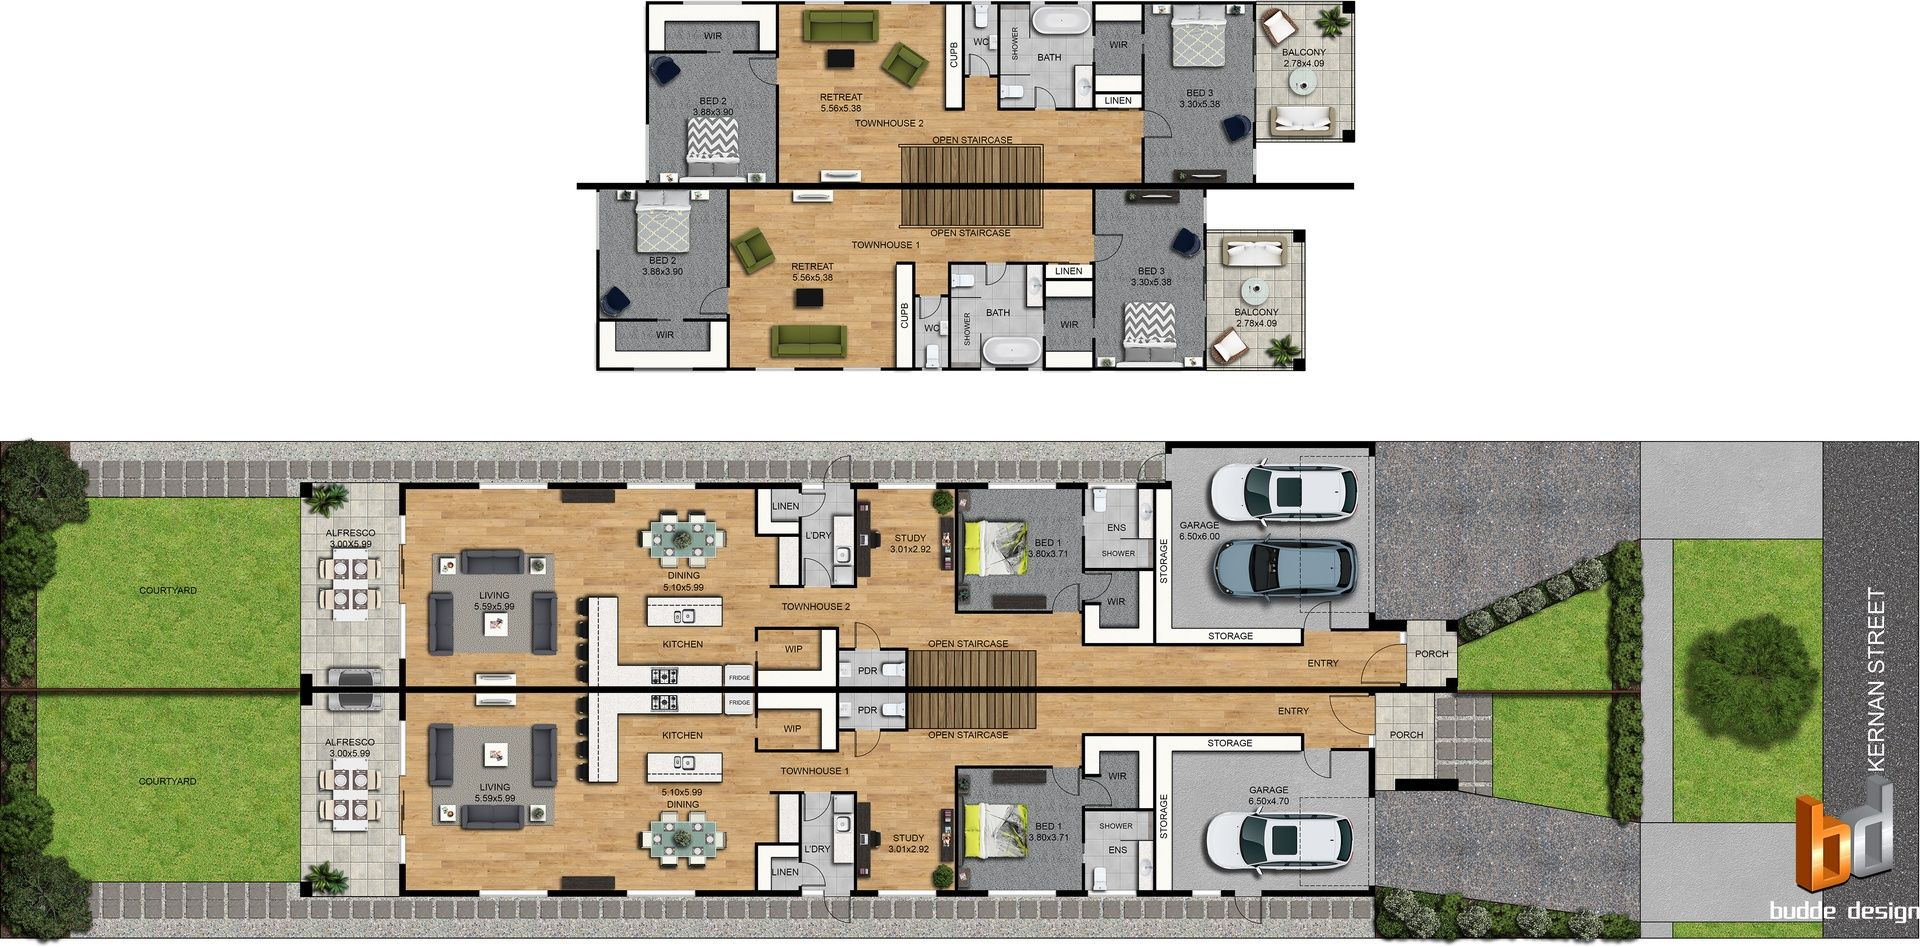 Australiau0027s Leading 3D Architectural Visualisation And Rendering Company  Specialising In 3D Architectural Visualisation   3D Architectural